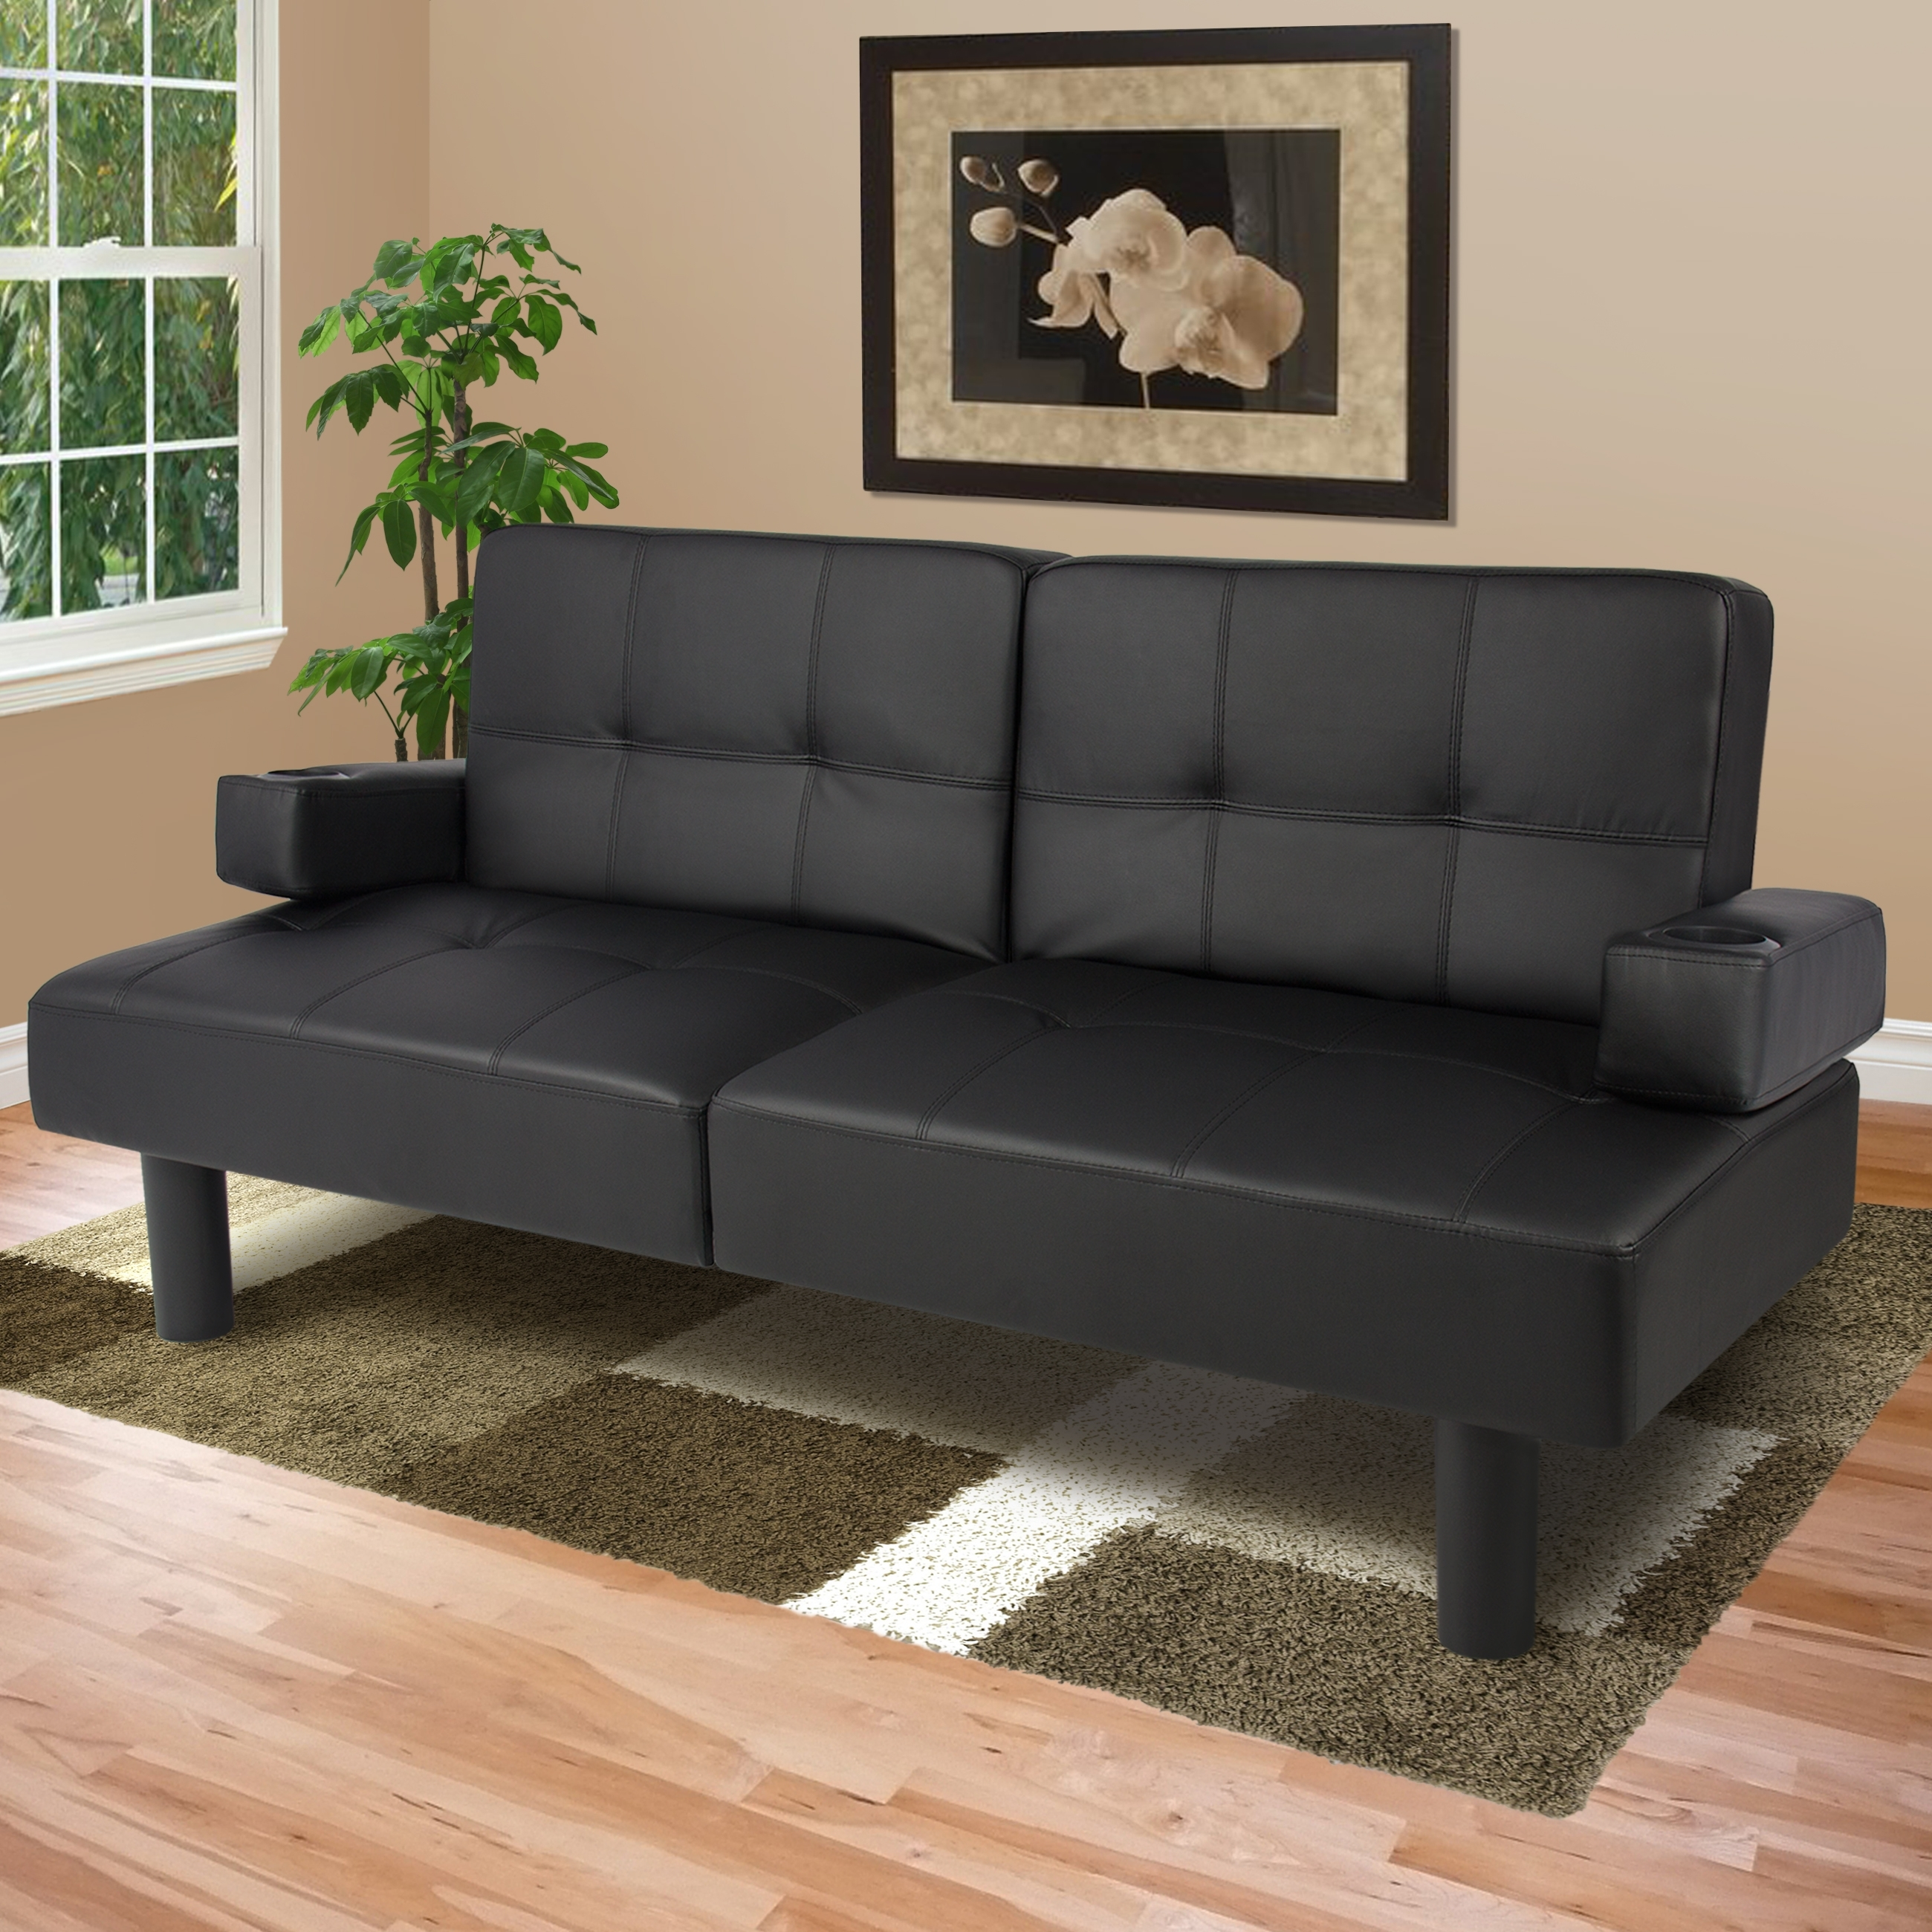 Latest Fold Up Sofa Chairs Intended For Best Choice Products Modern Faux Leather Fold Down Convertible (View 11 of 20)